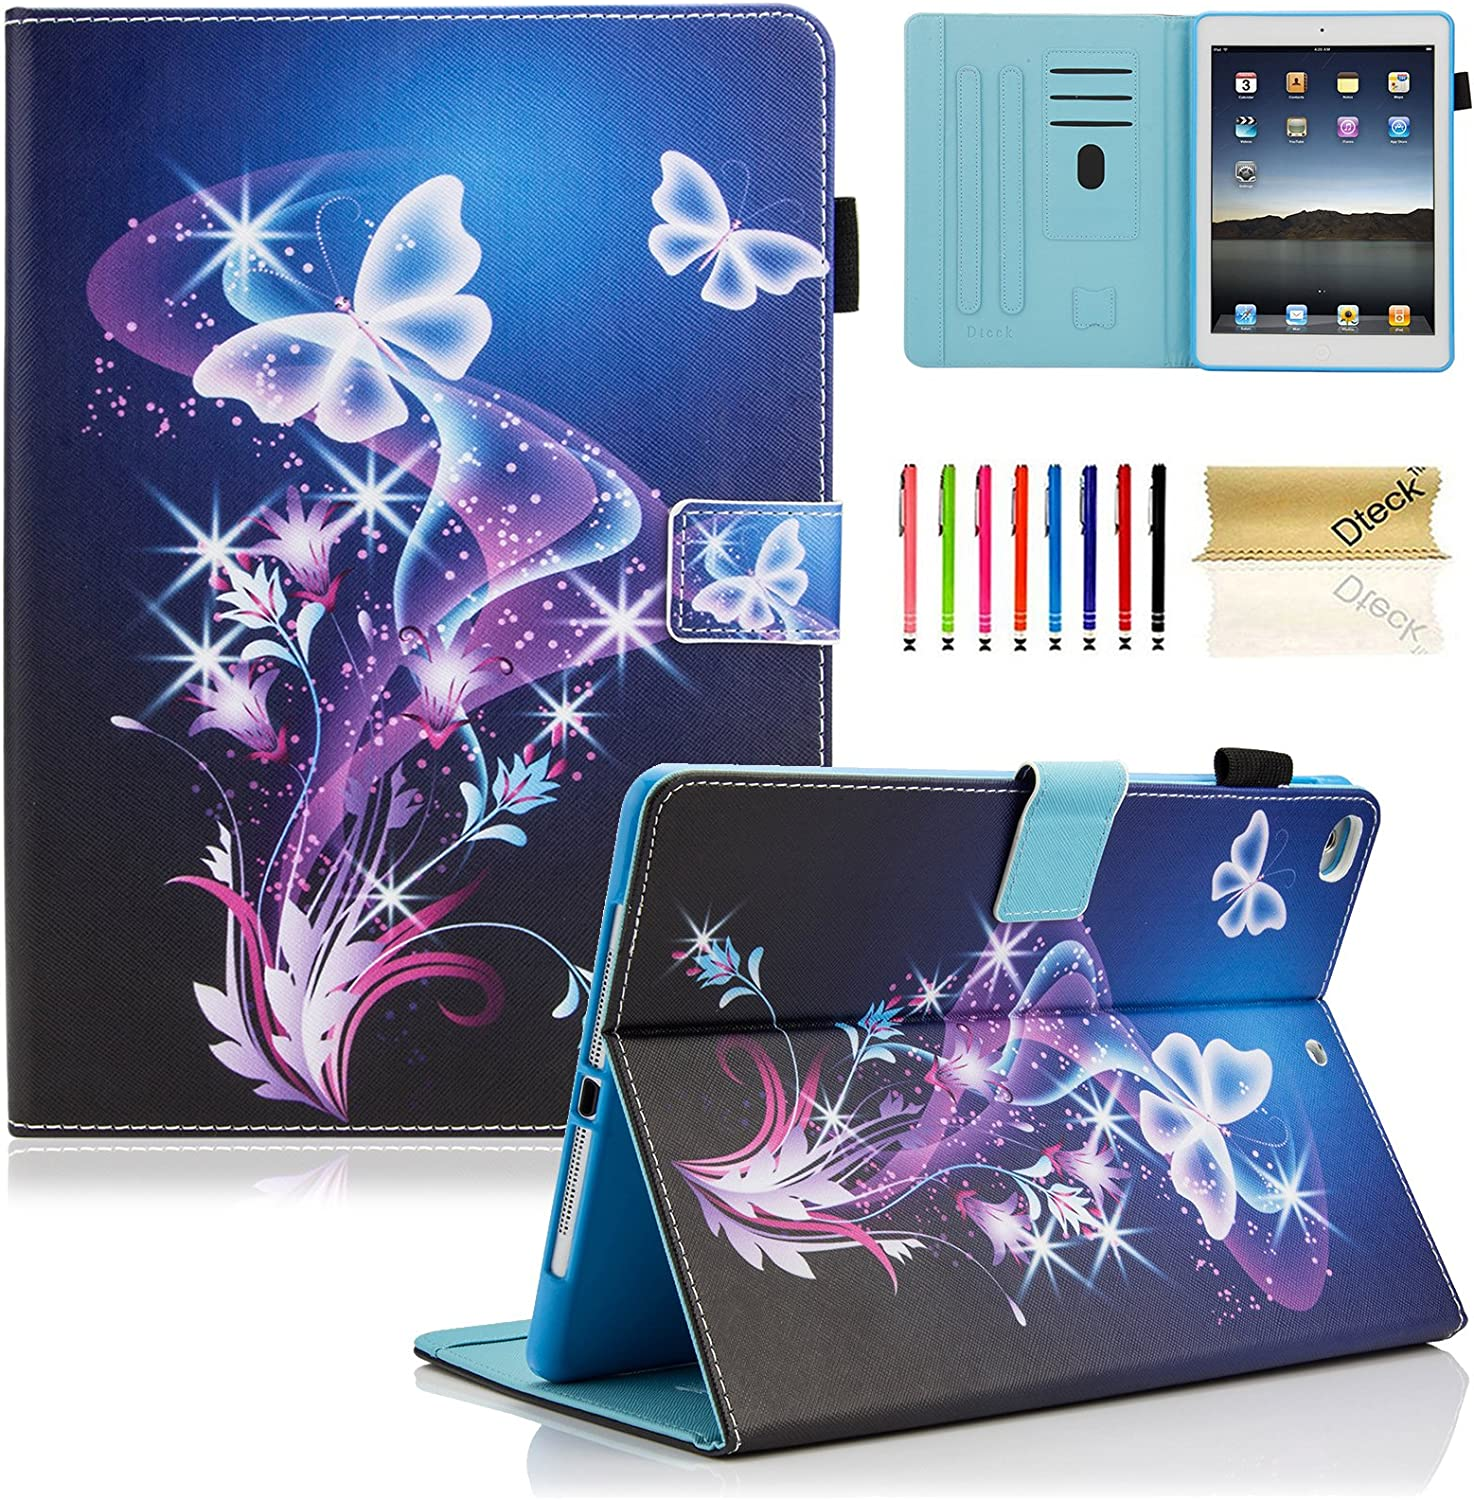 iPad 9.7 inch 2018 2017 Case/iPad Air Case/iPad Air 2 Case, Dteck PU Leather Folio Smart Cover with Auto Sleep Wake Stand Wallet Case for Apple iPad 6th / 5th Gen,iPad Air 1 2, Purple Butterfly